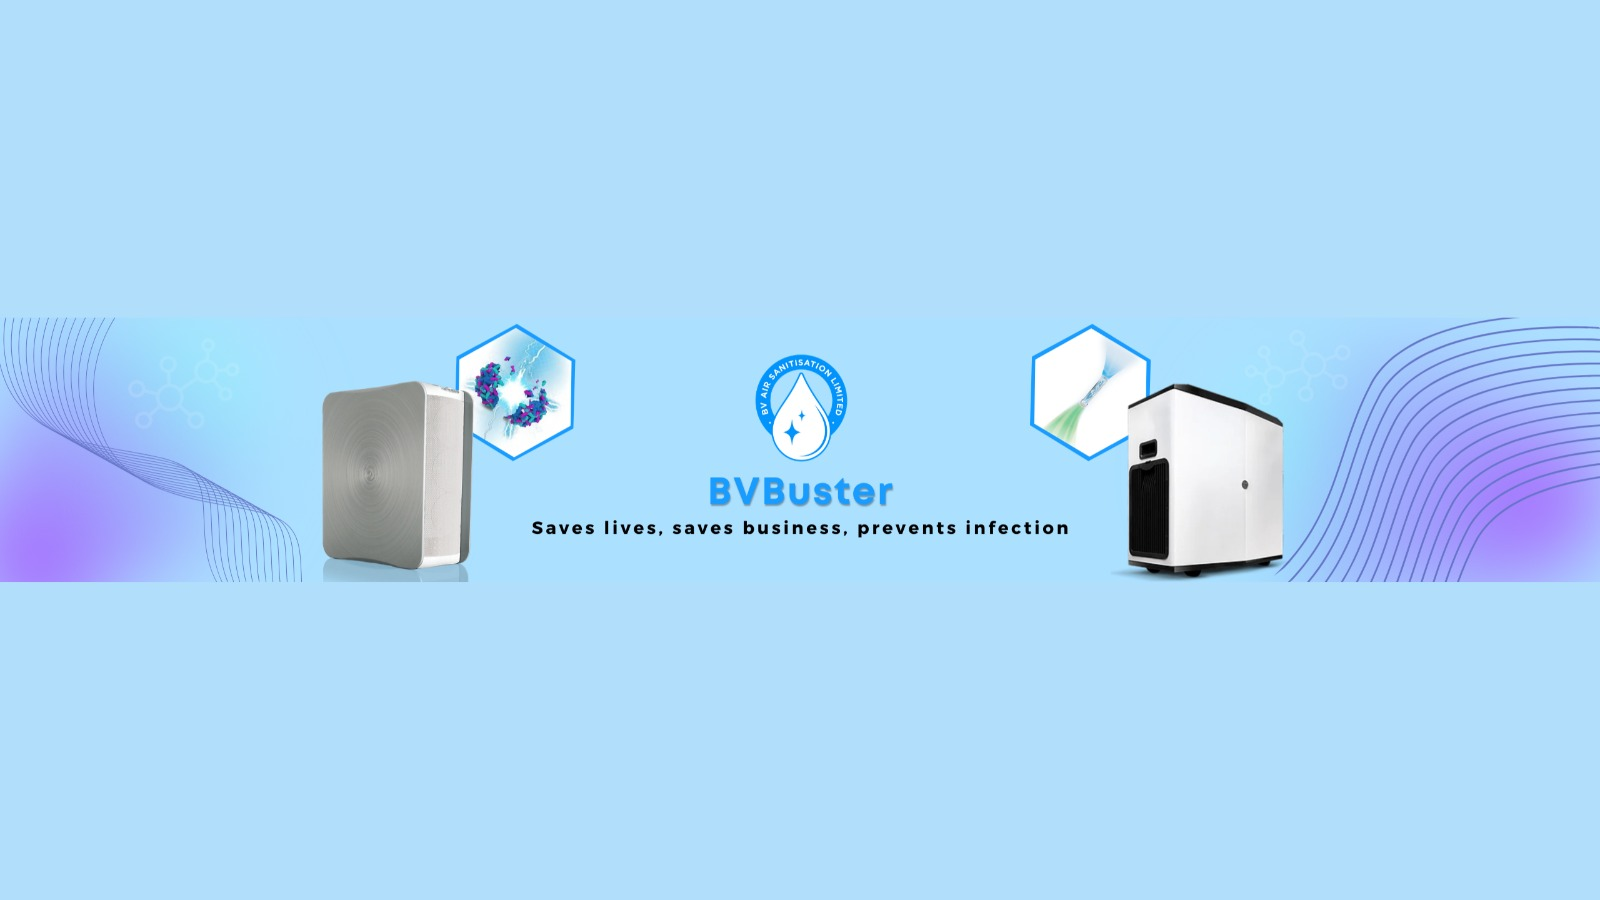 BV Buster Introducing Game-Changing Air Disinfection and Sanitization Systems to Save Lives, Save Businesses and Prevent Infection.